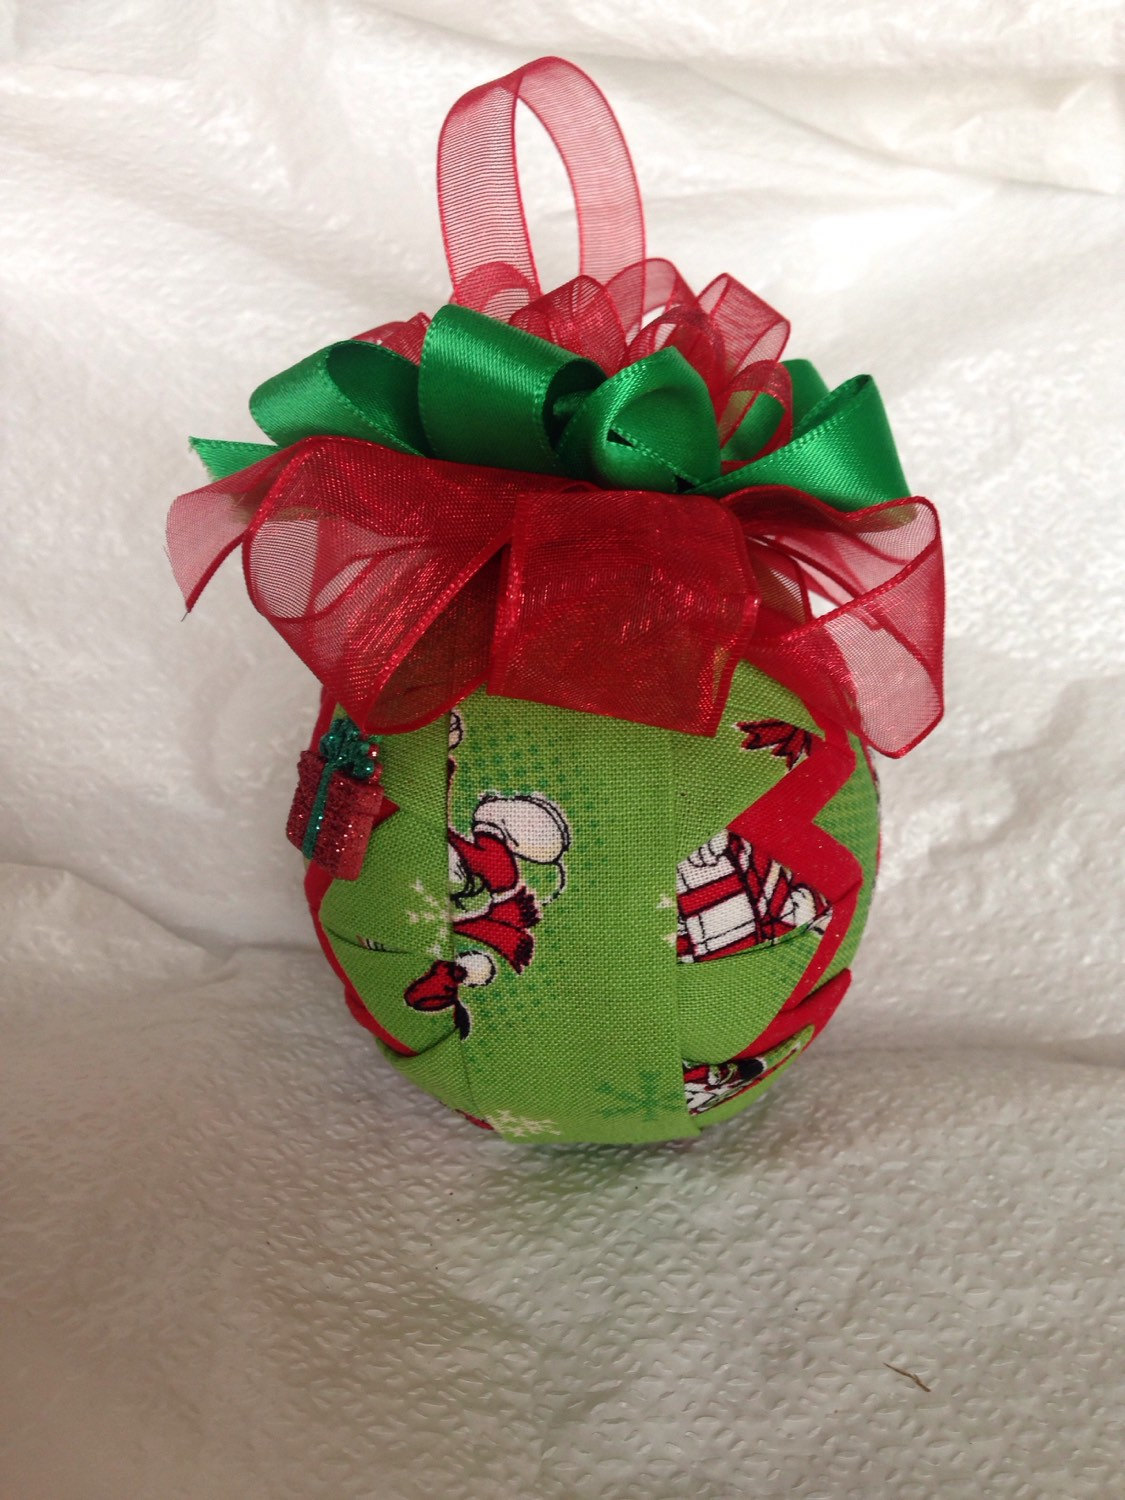 Disney Inspired Donald Duck Gifts Quilted Christmas Ornament · NCGal ...